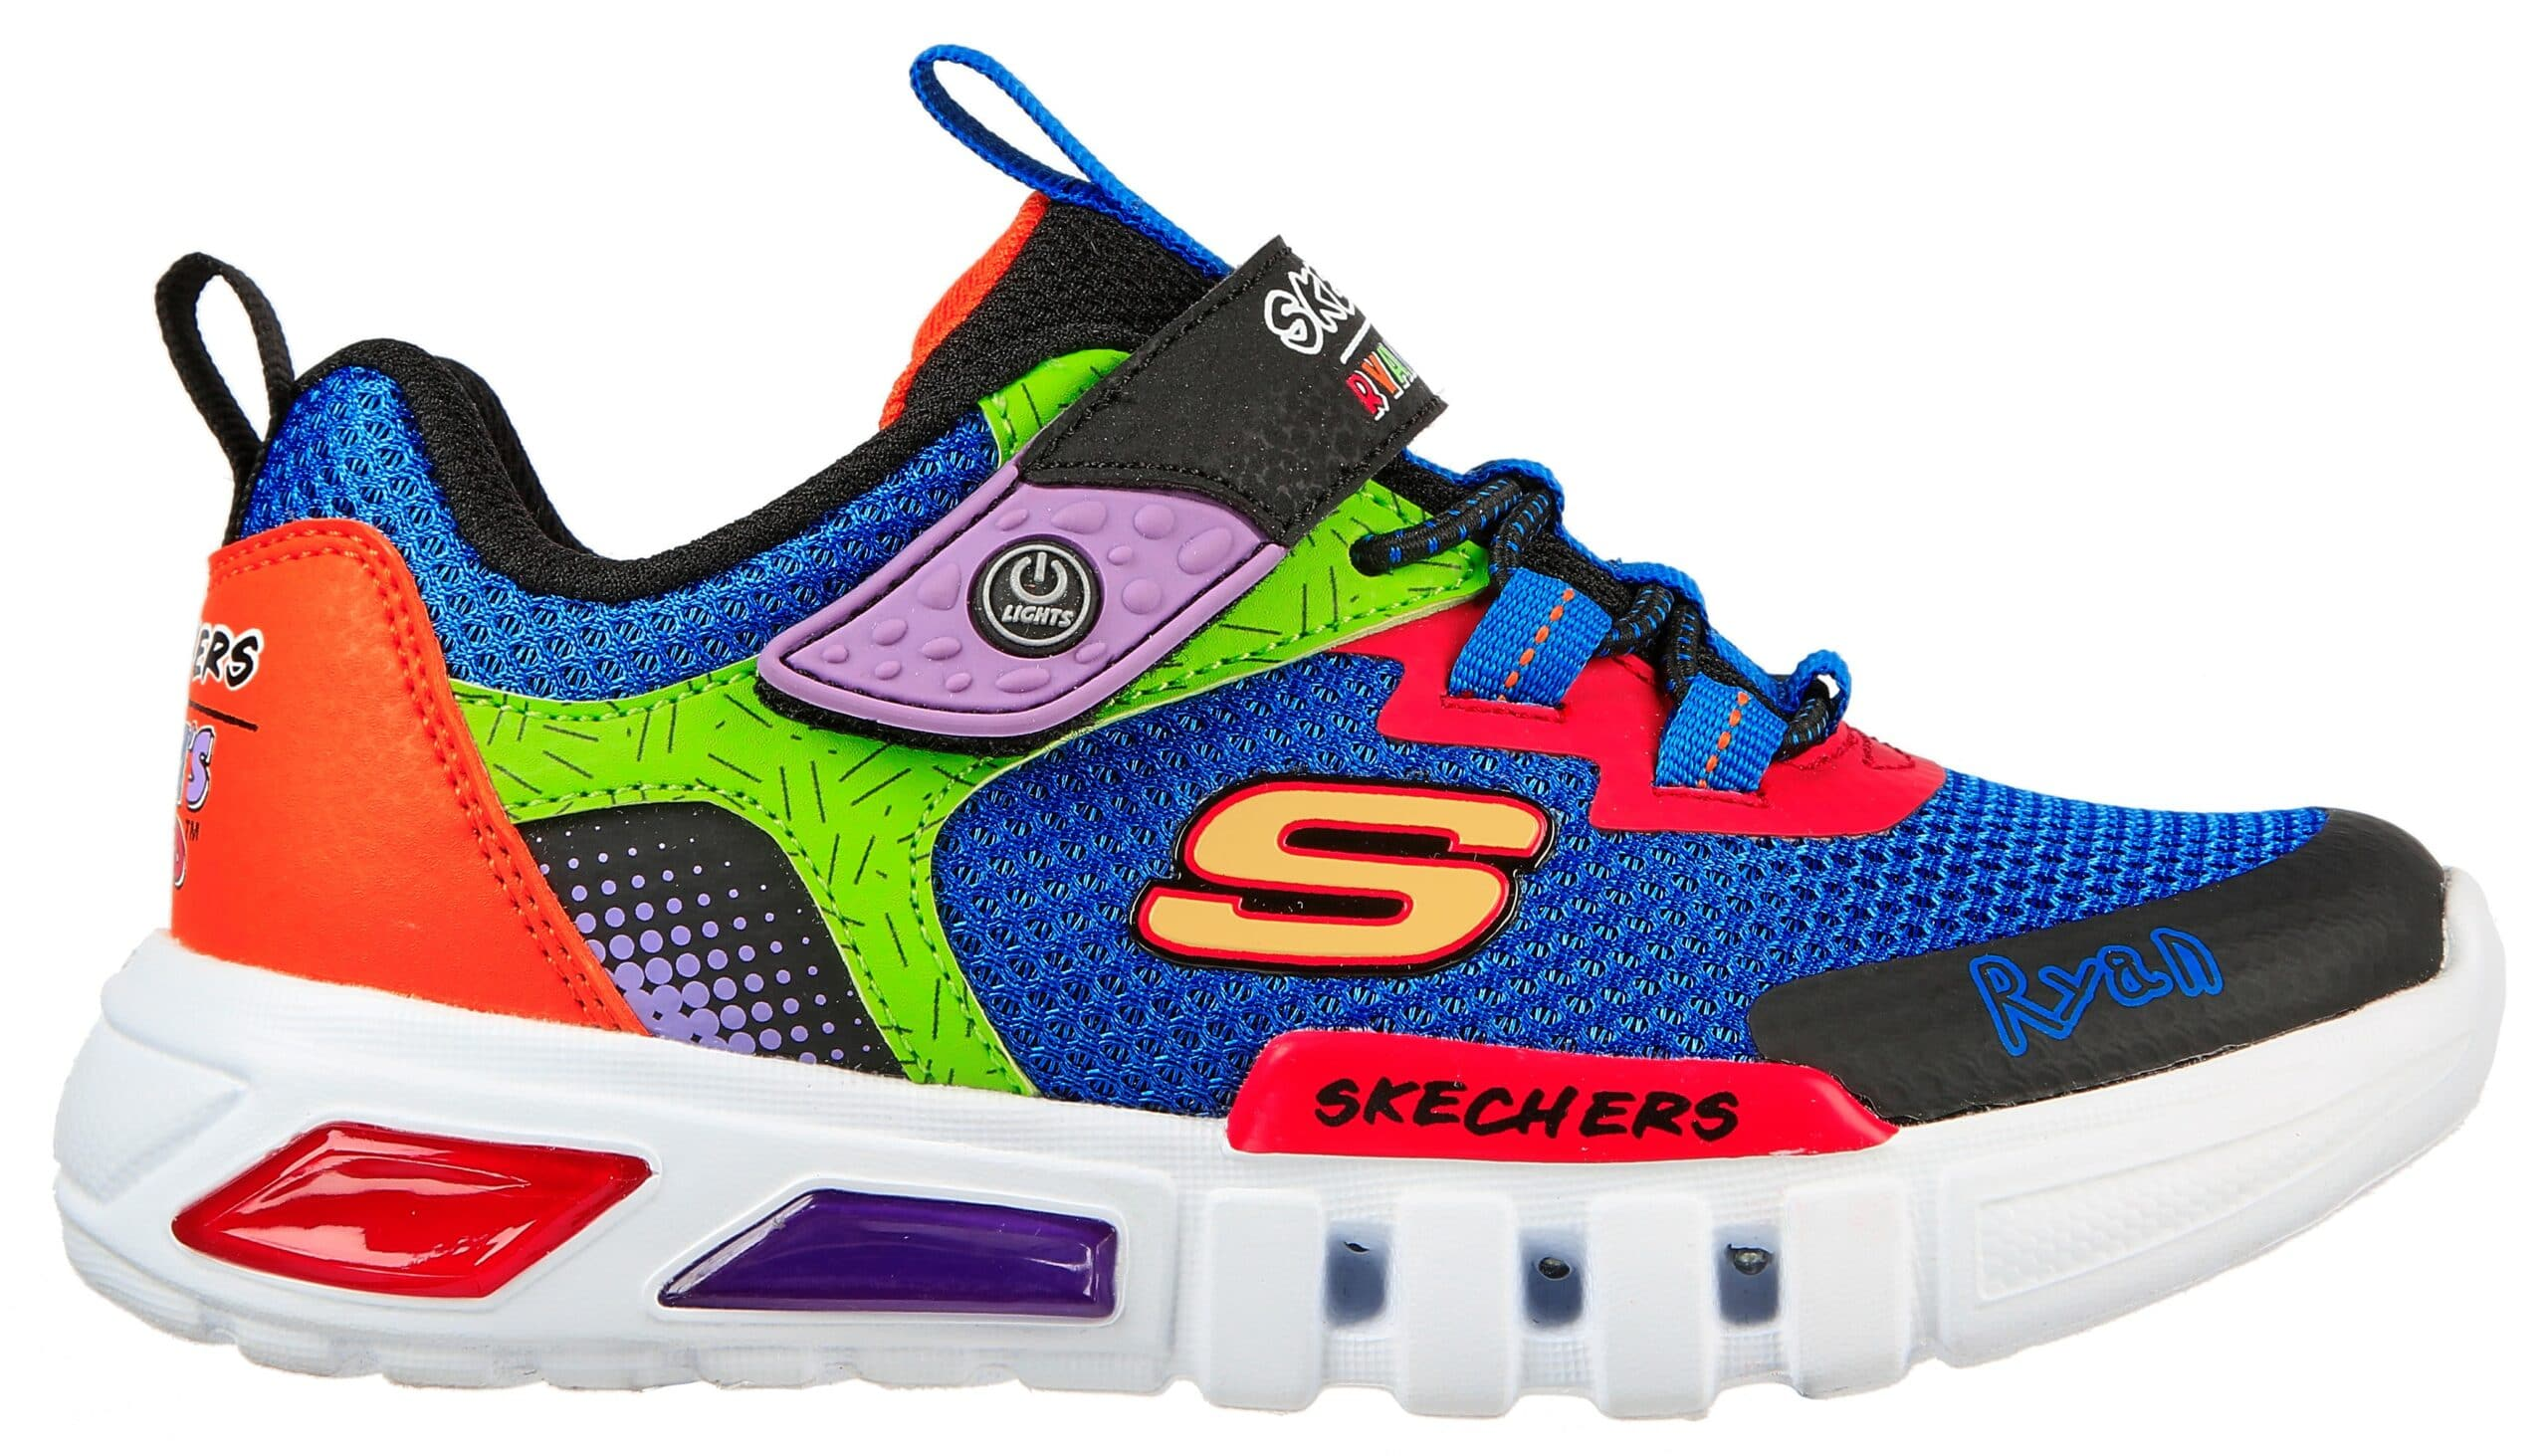 Skechers and Ryan's World YouTube channel collab for a shoe collection for kids 16